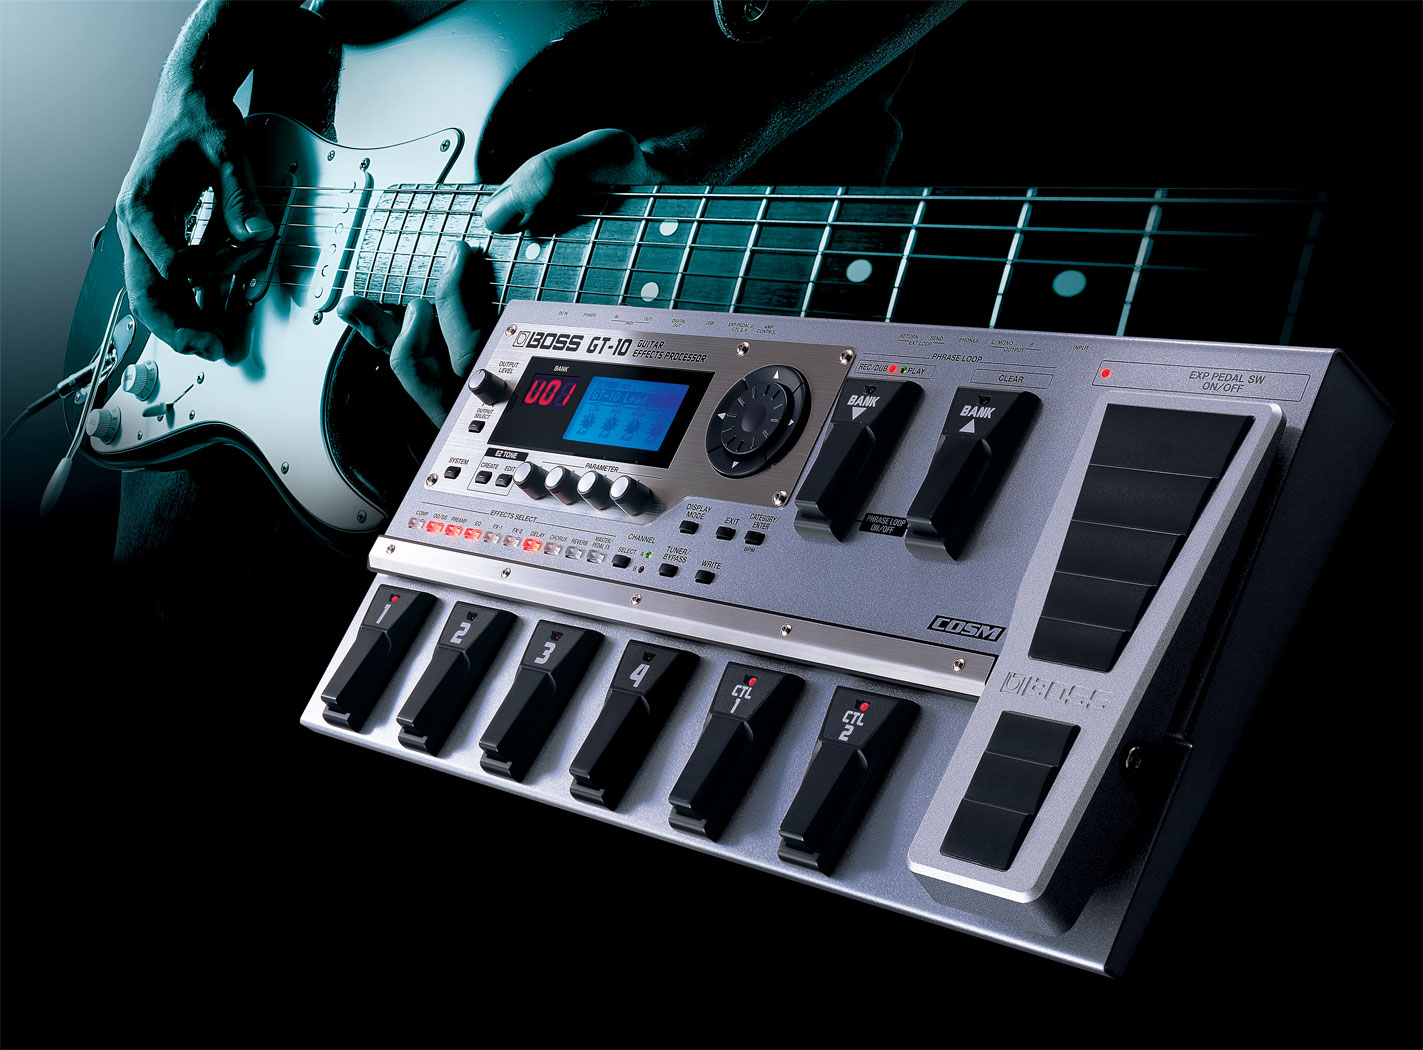 Boss Gt 10 Guitar Effects Processor Home Structured Wiring Channel Vision Panels And